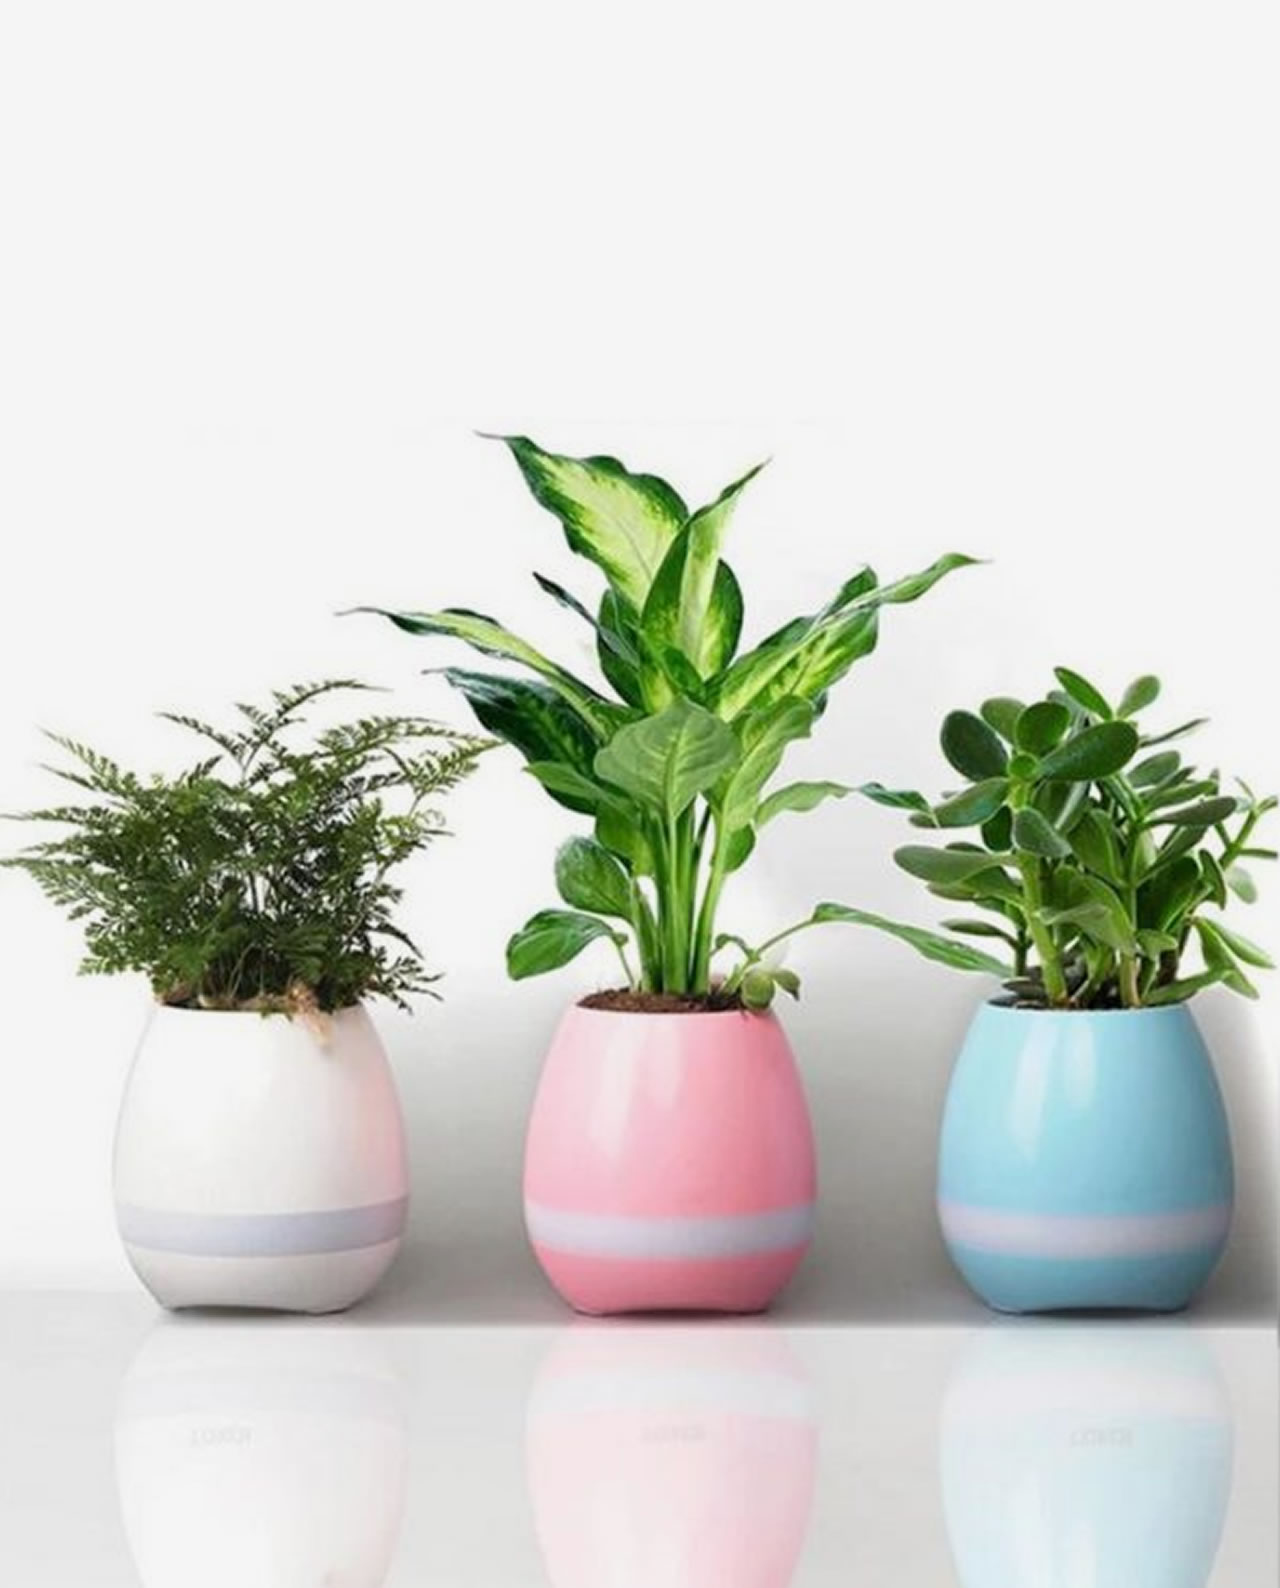 magic flower pot speaker hdtv entertainment. Black Bedroom Furniture Sets. Home Design Ideas